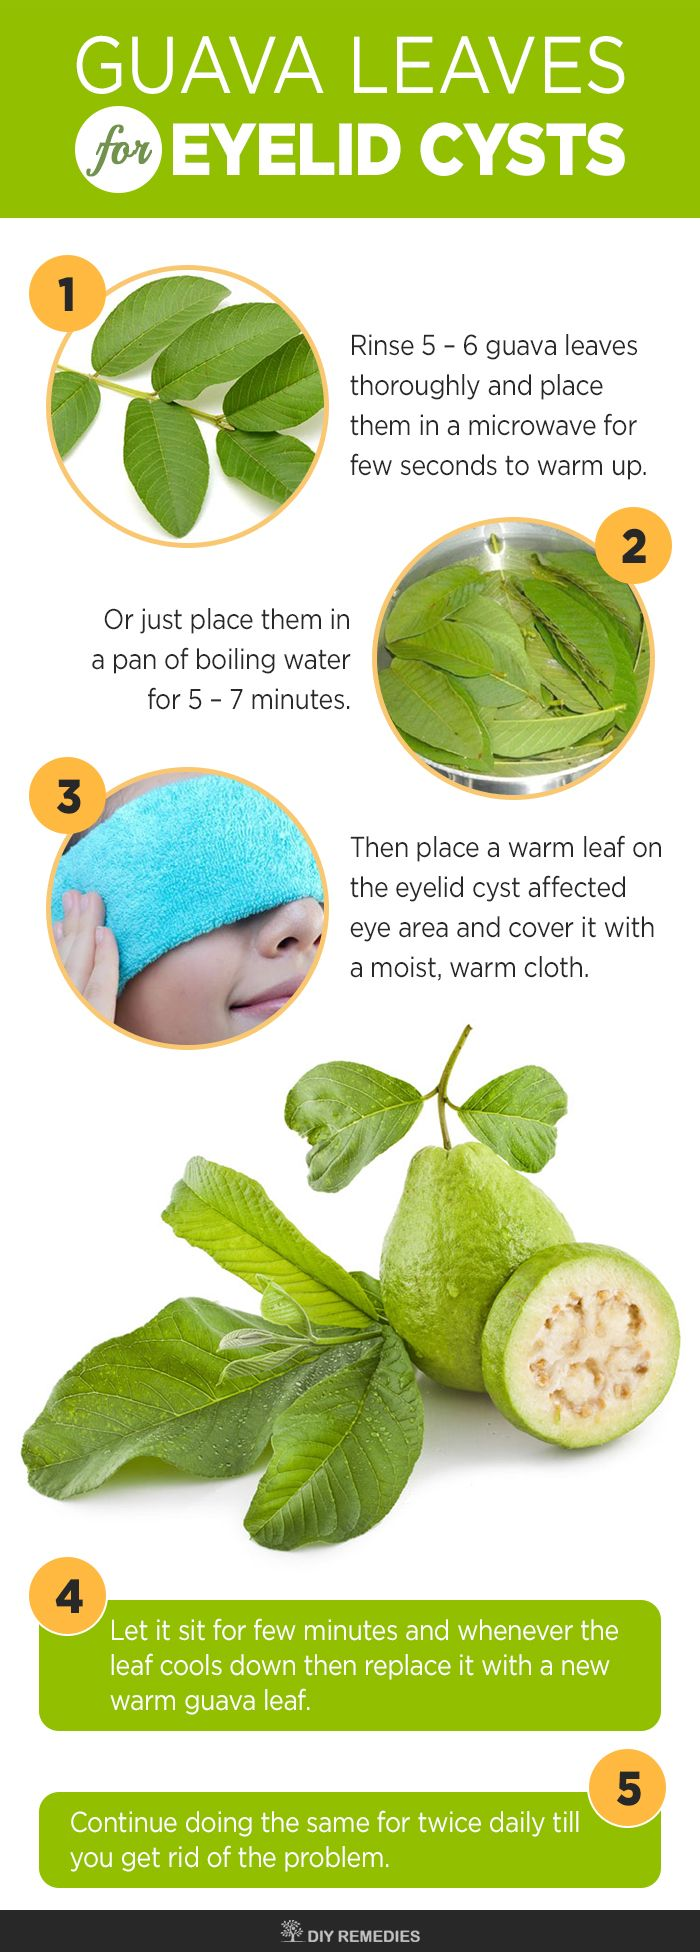 Guava Leaves To Get Rid Of Eyelid Cysts Guava Leaves Have Antiseptic And  Anti